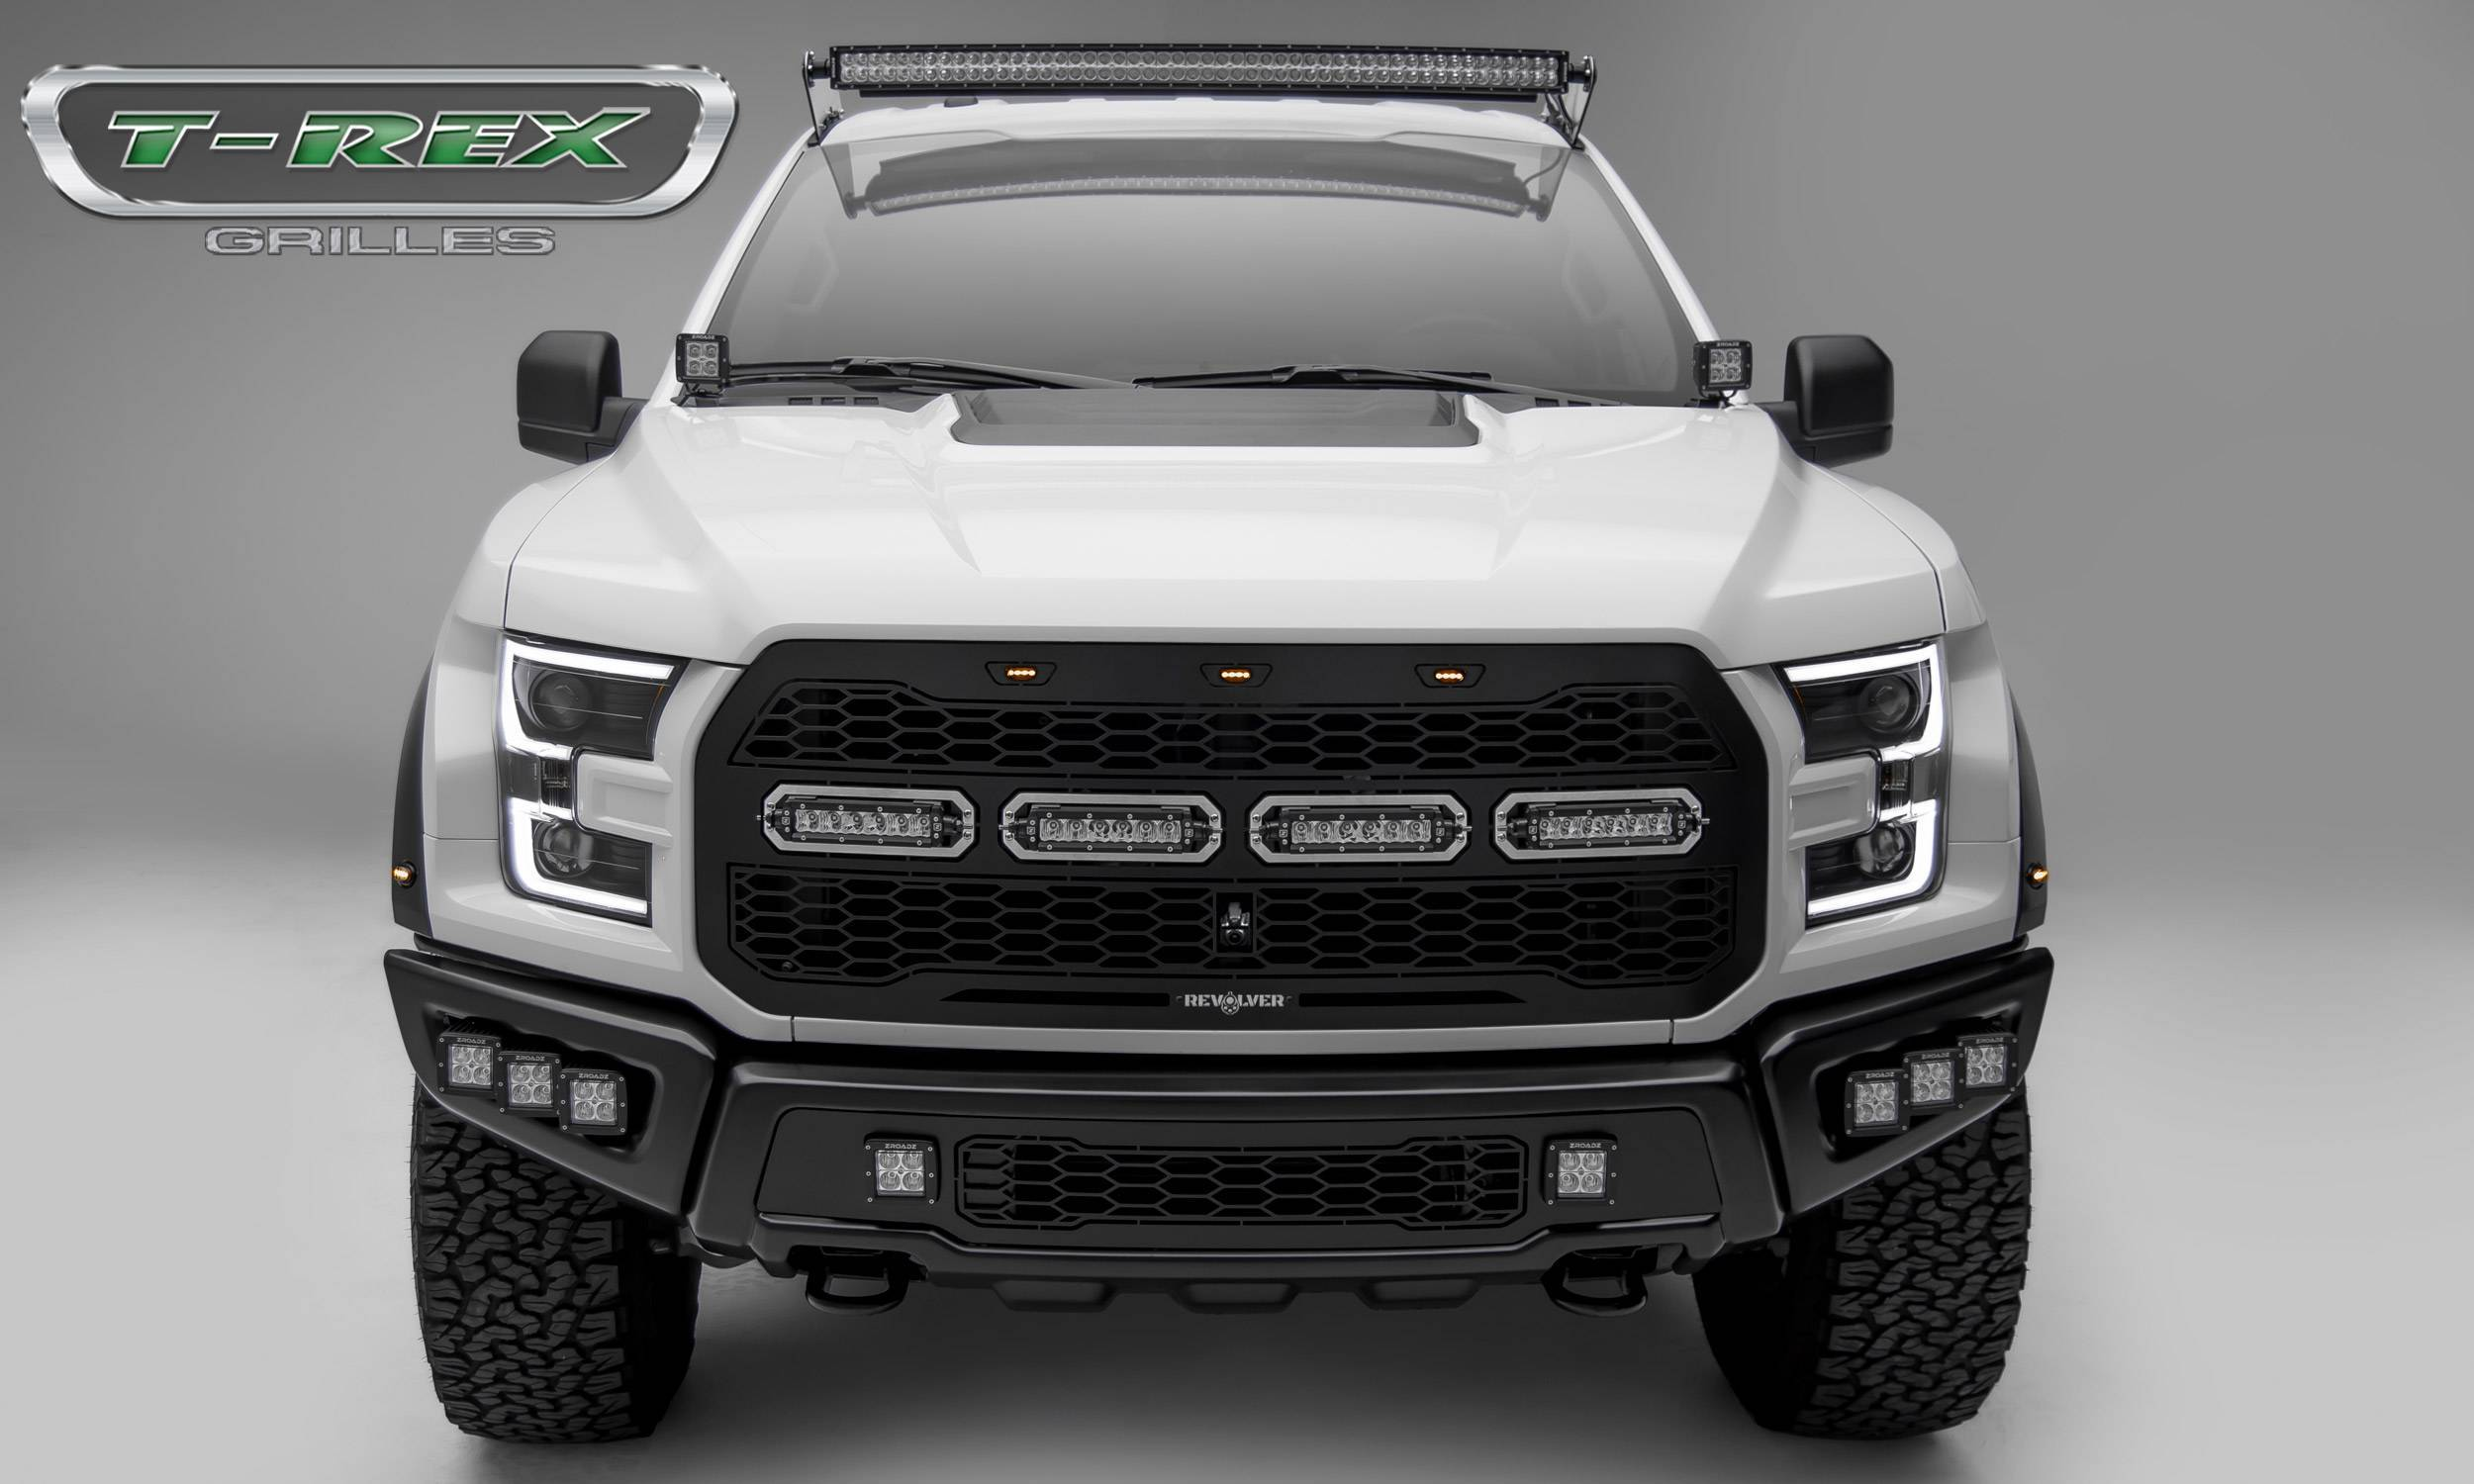 T-REX Grilles - 2017-2021 F-150 Raptor SVT Revolver Grille, Black, 1 Pc, Replacement with (4) 6 Inch LEDs, Fits Vehicles with Camera - PN #6515671